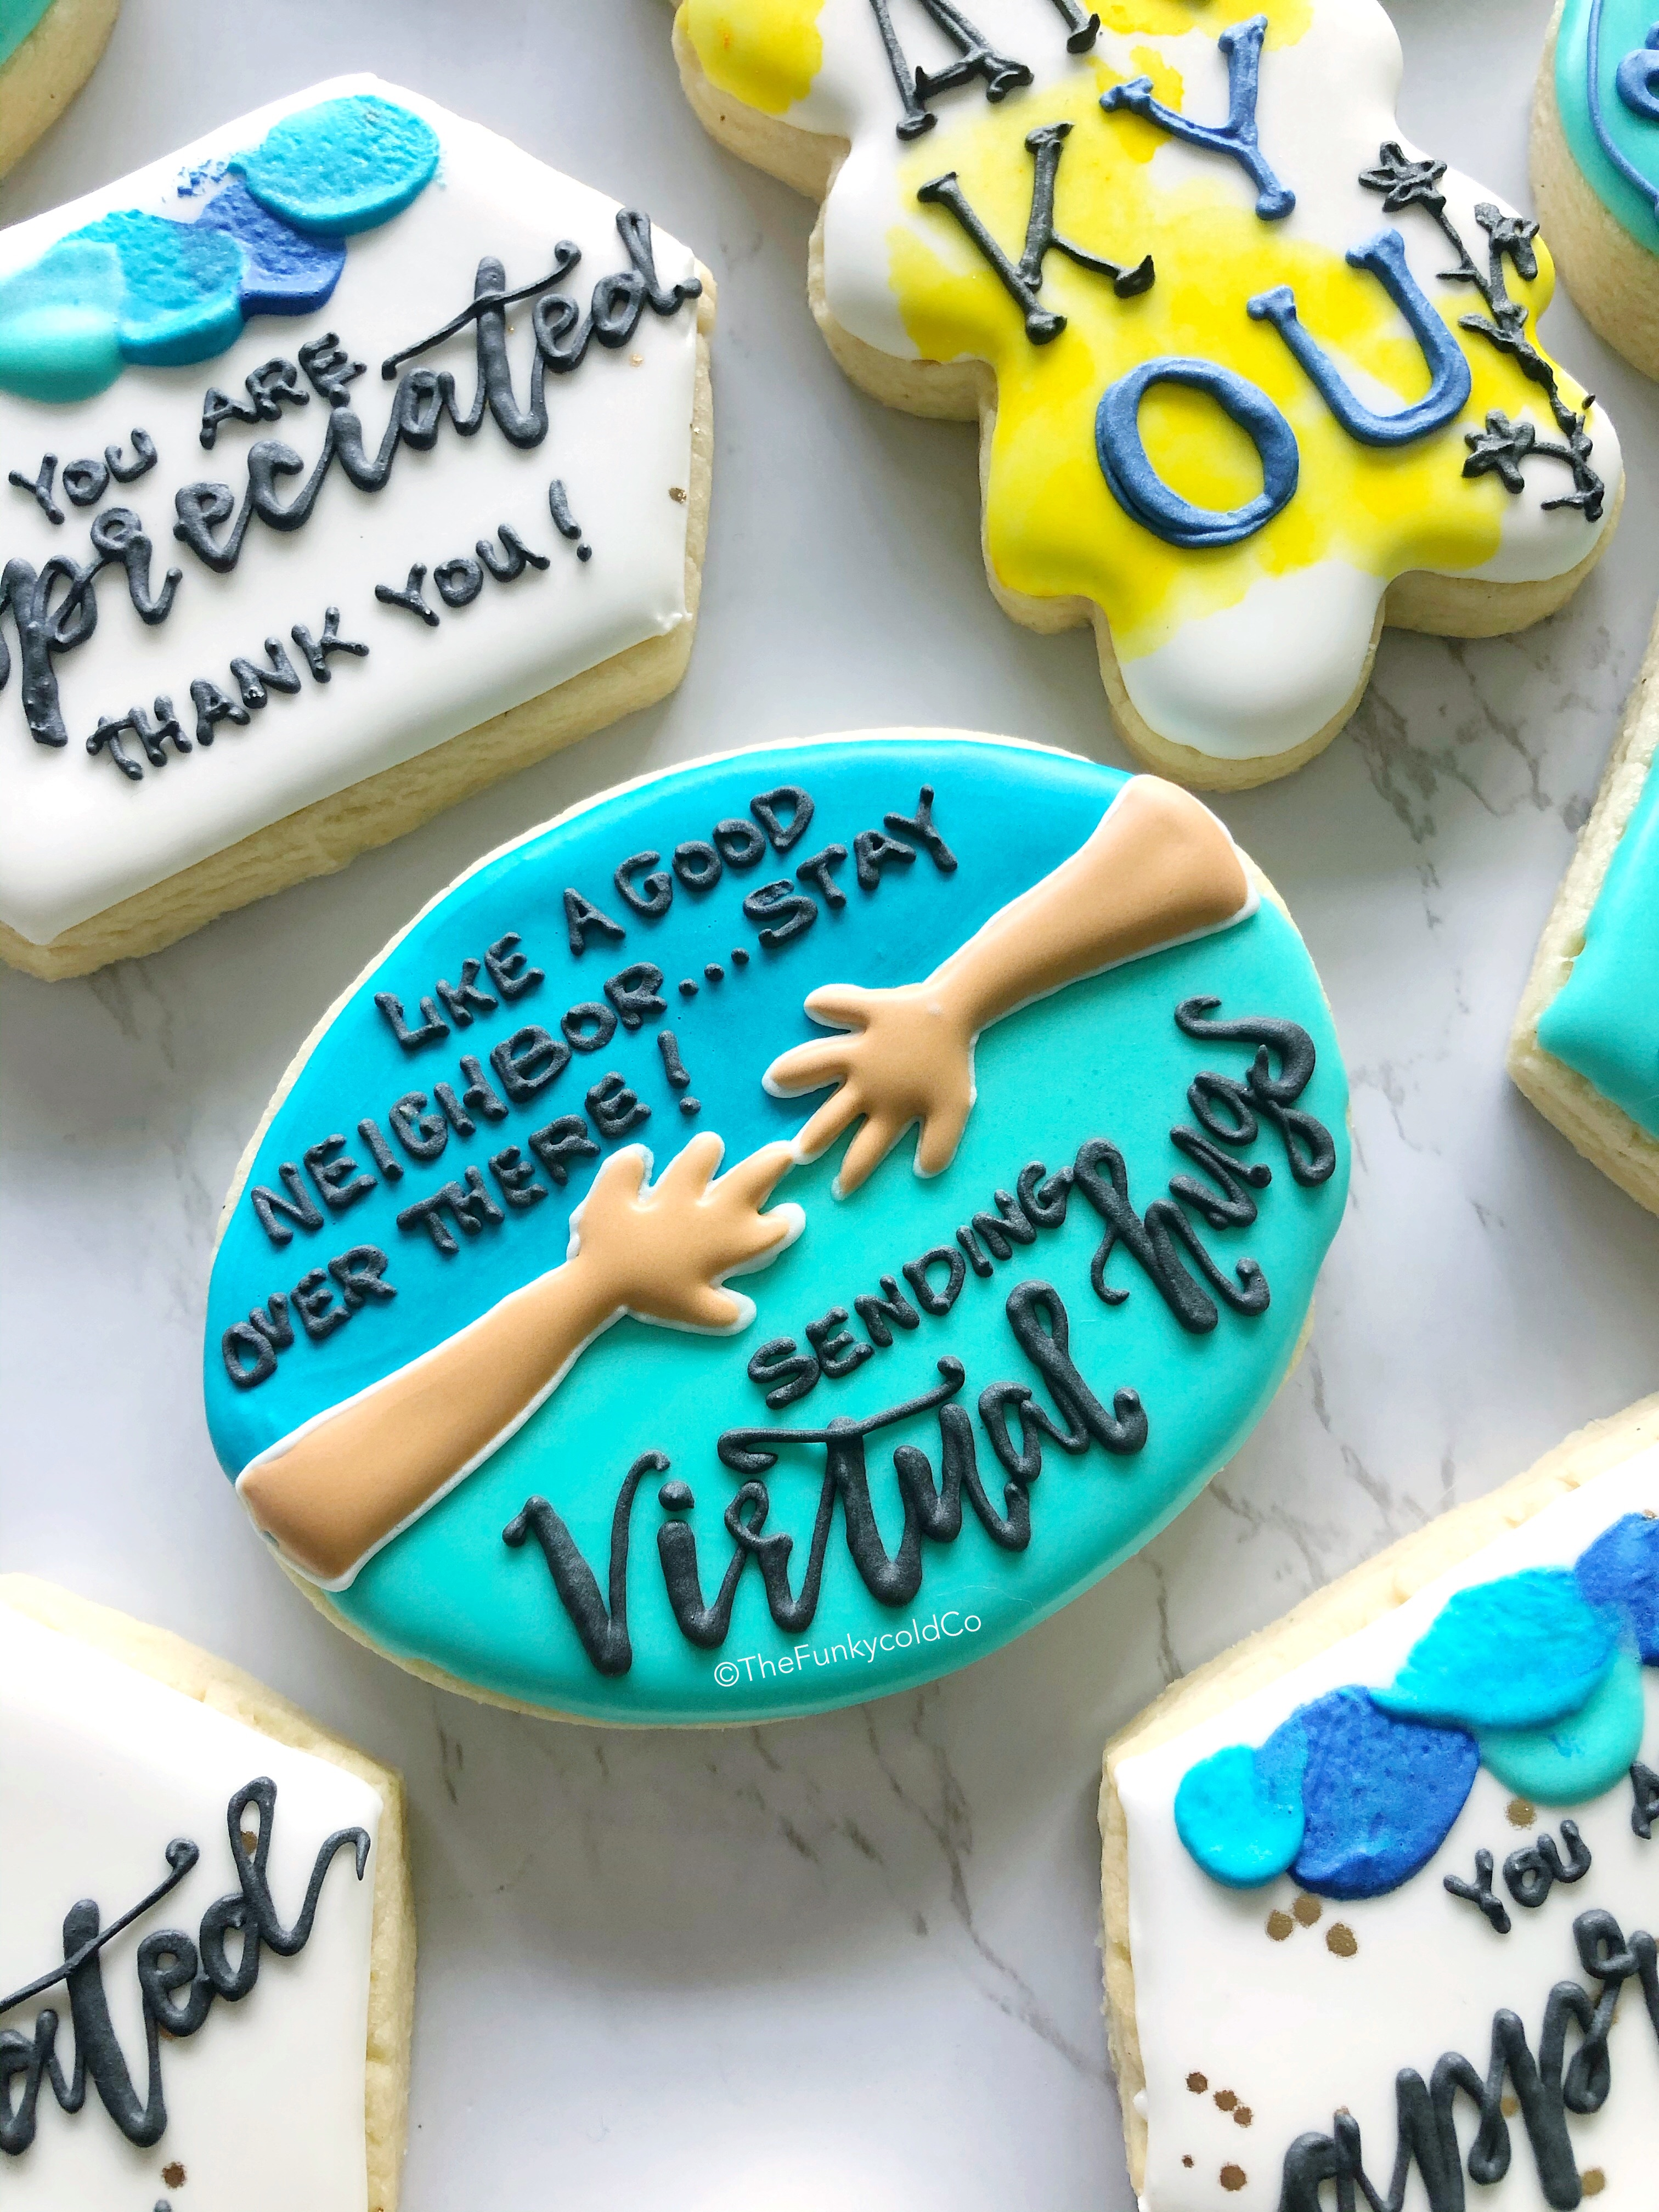 Steph and Jeff Medina create gorgeous customized cookies that celebrate community during the time of Covid-19. (Photo: The Funkycold Co.)